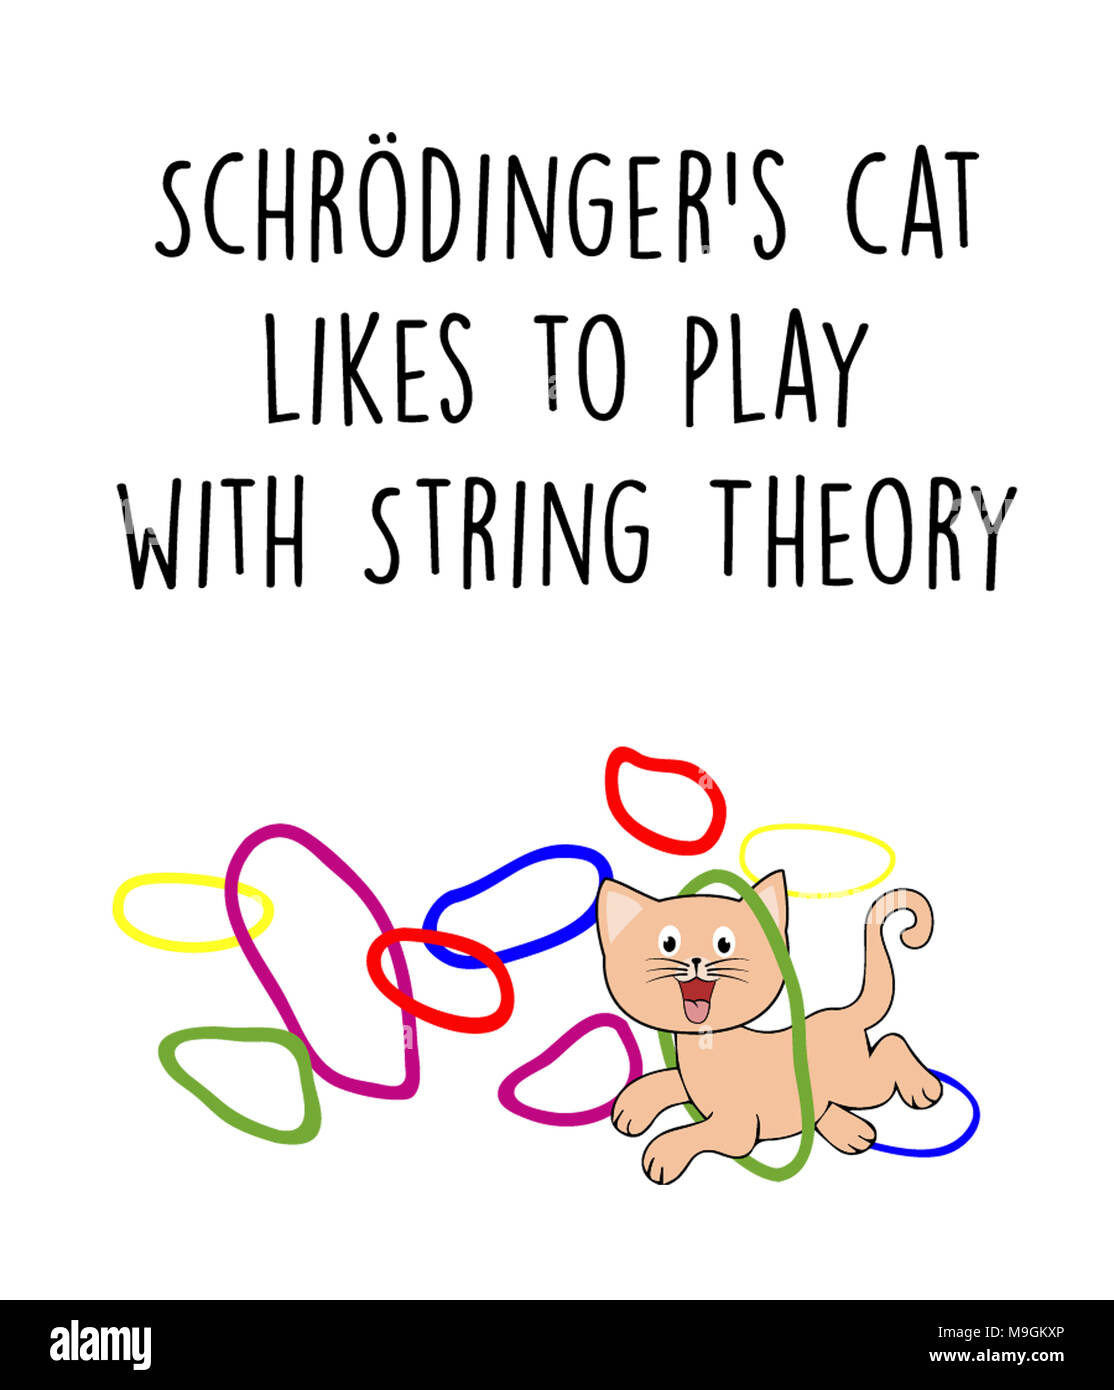 Schrodinger's cat likes to play with String Theory - Stock Image